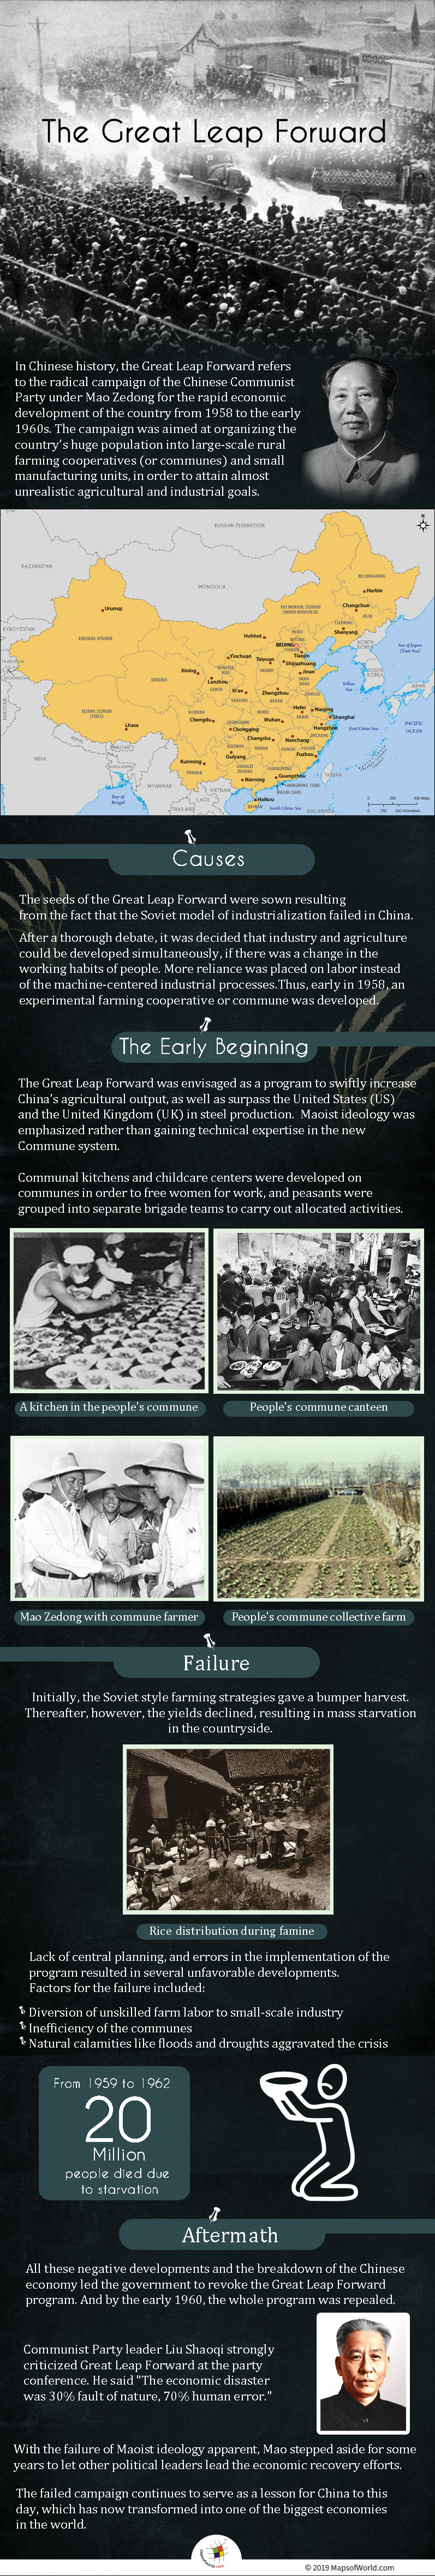 Infographic Giving Details on The Great Leap Forward